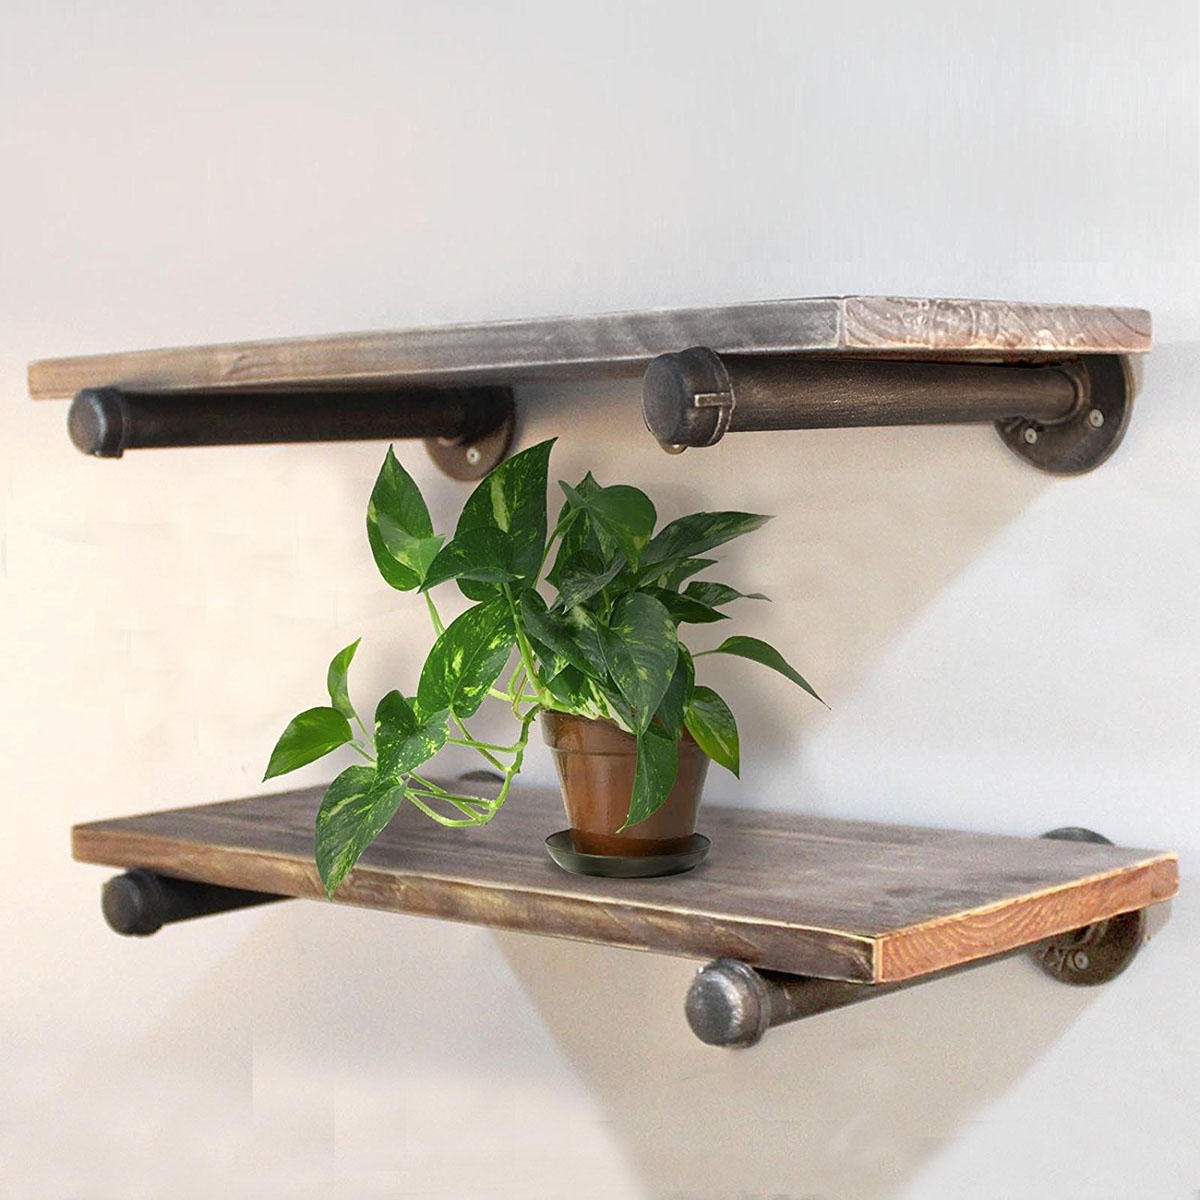 rustic industrial pipe shelf bracket floating wooden board shelves wall mounted holder cod bathroom ladder target ikea chair and organizers glass dvd entertainment center hack